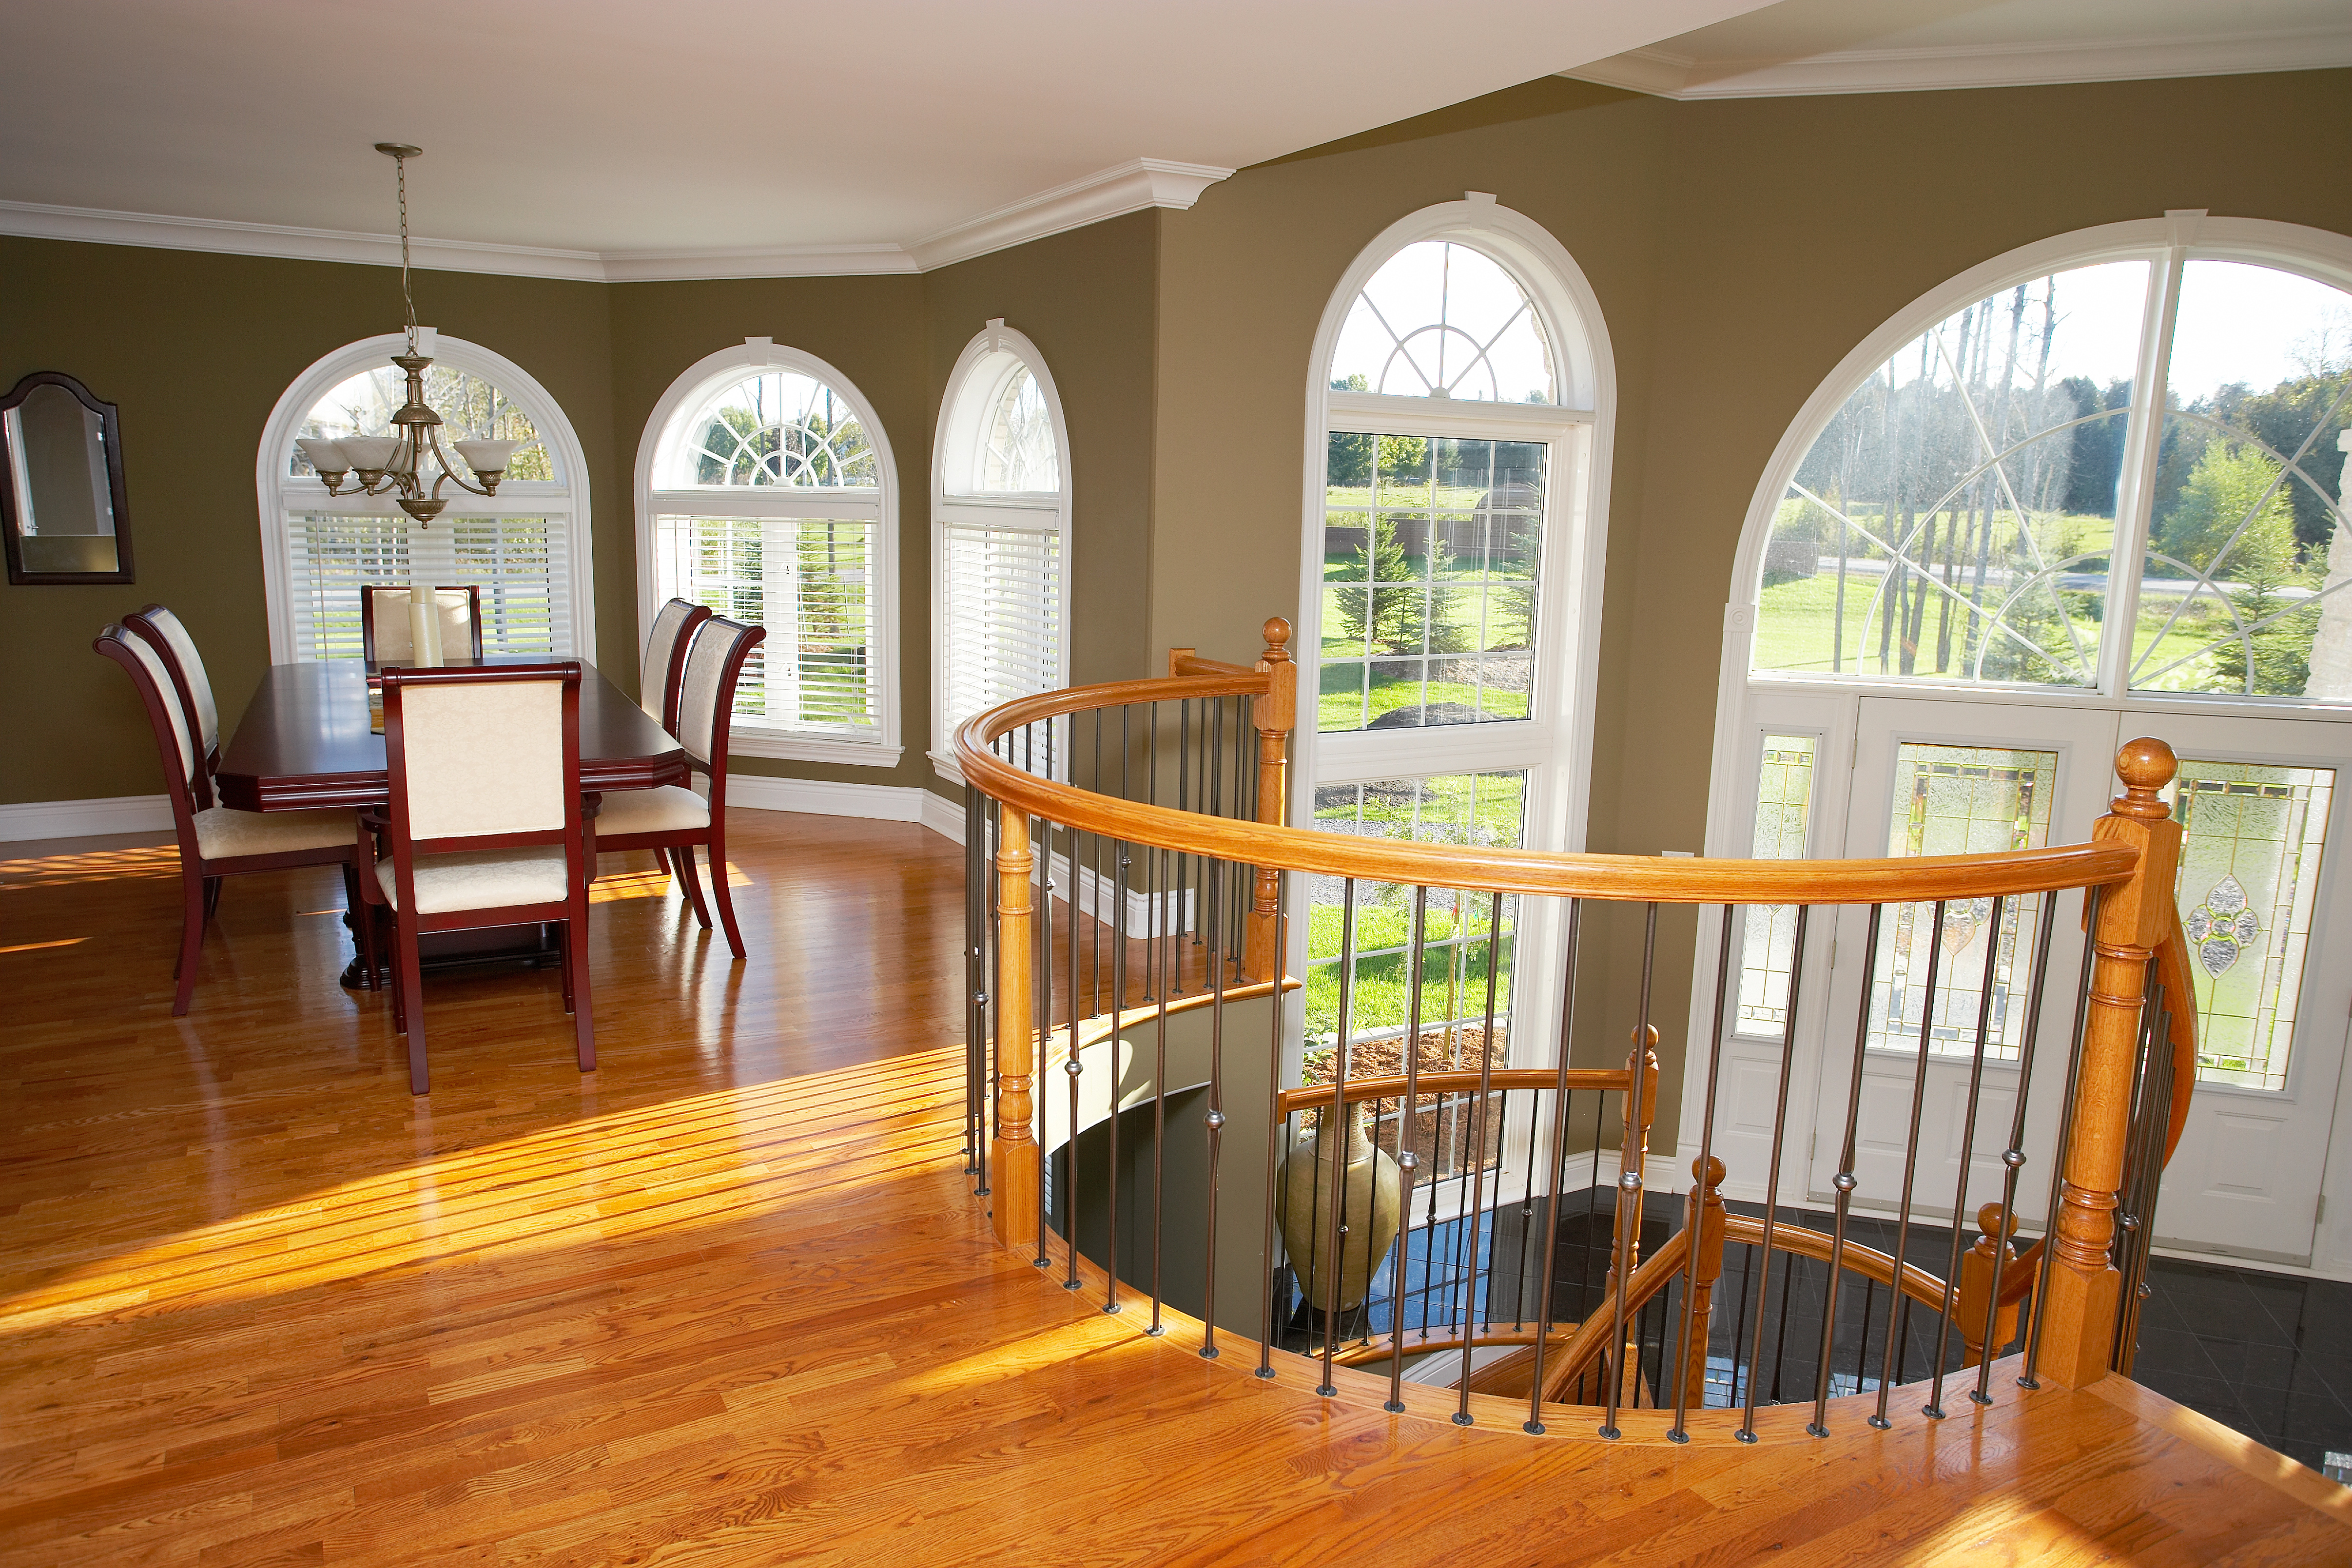 Best replacement windows cabot ar residential vinyl window installation central arkansas windows and more